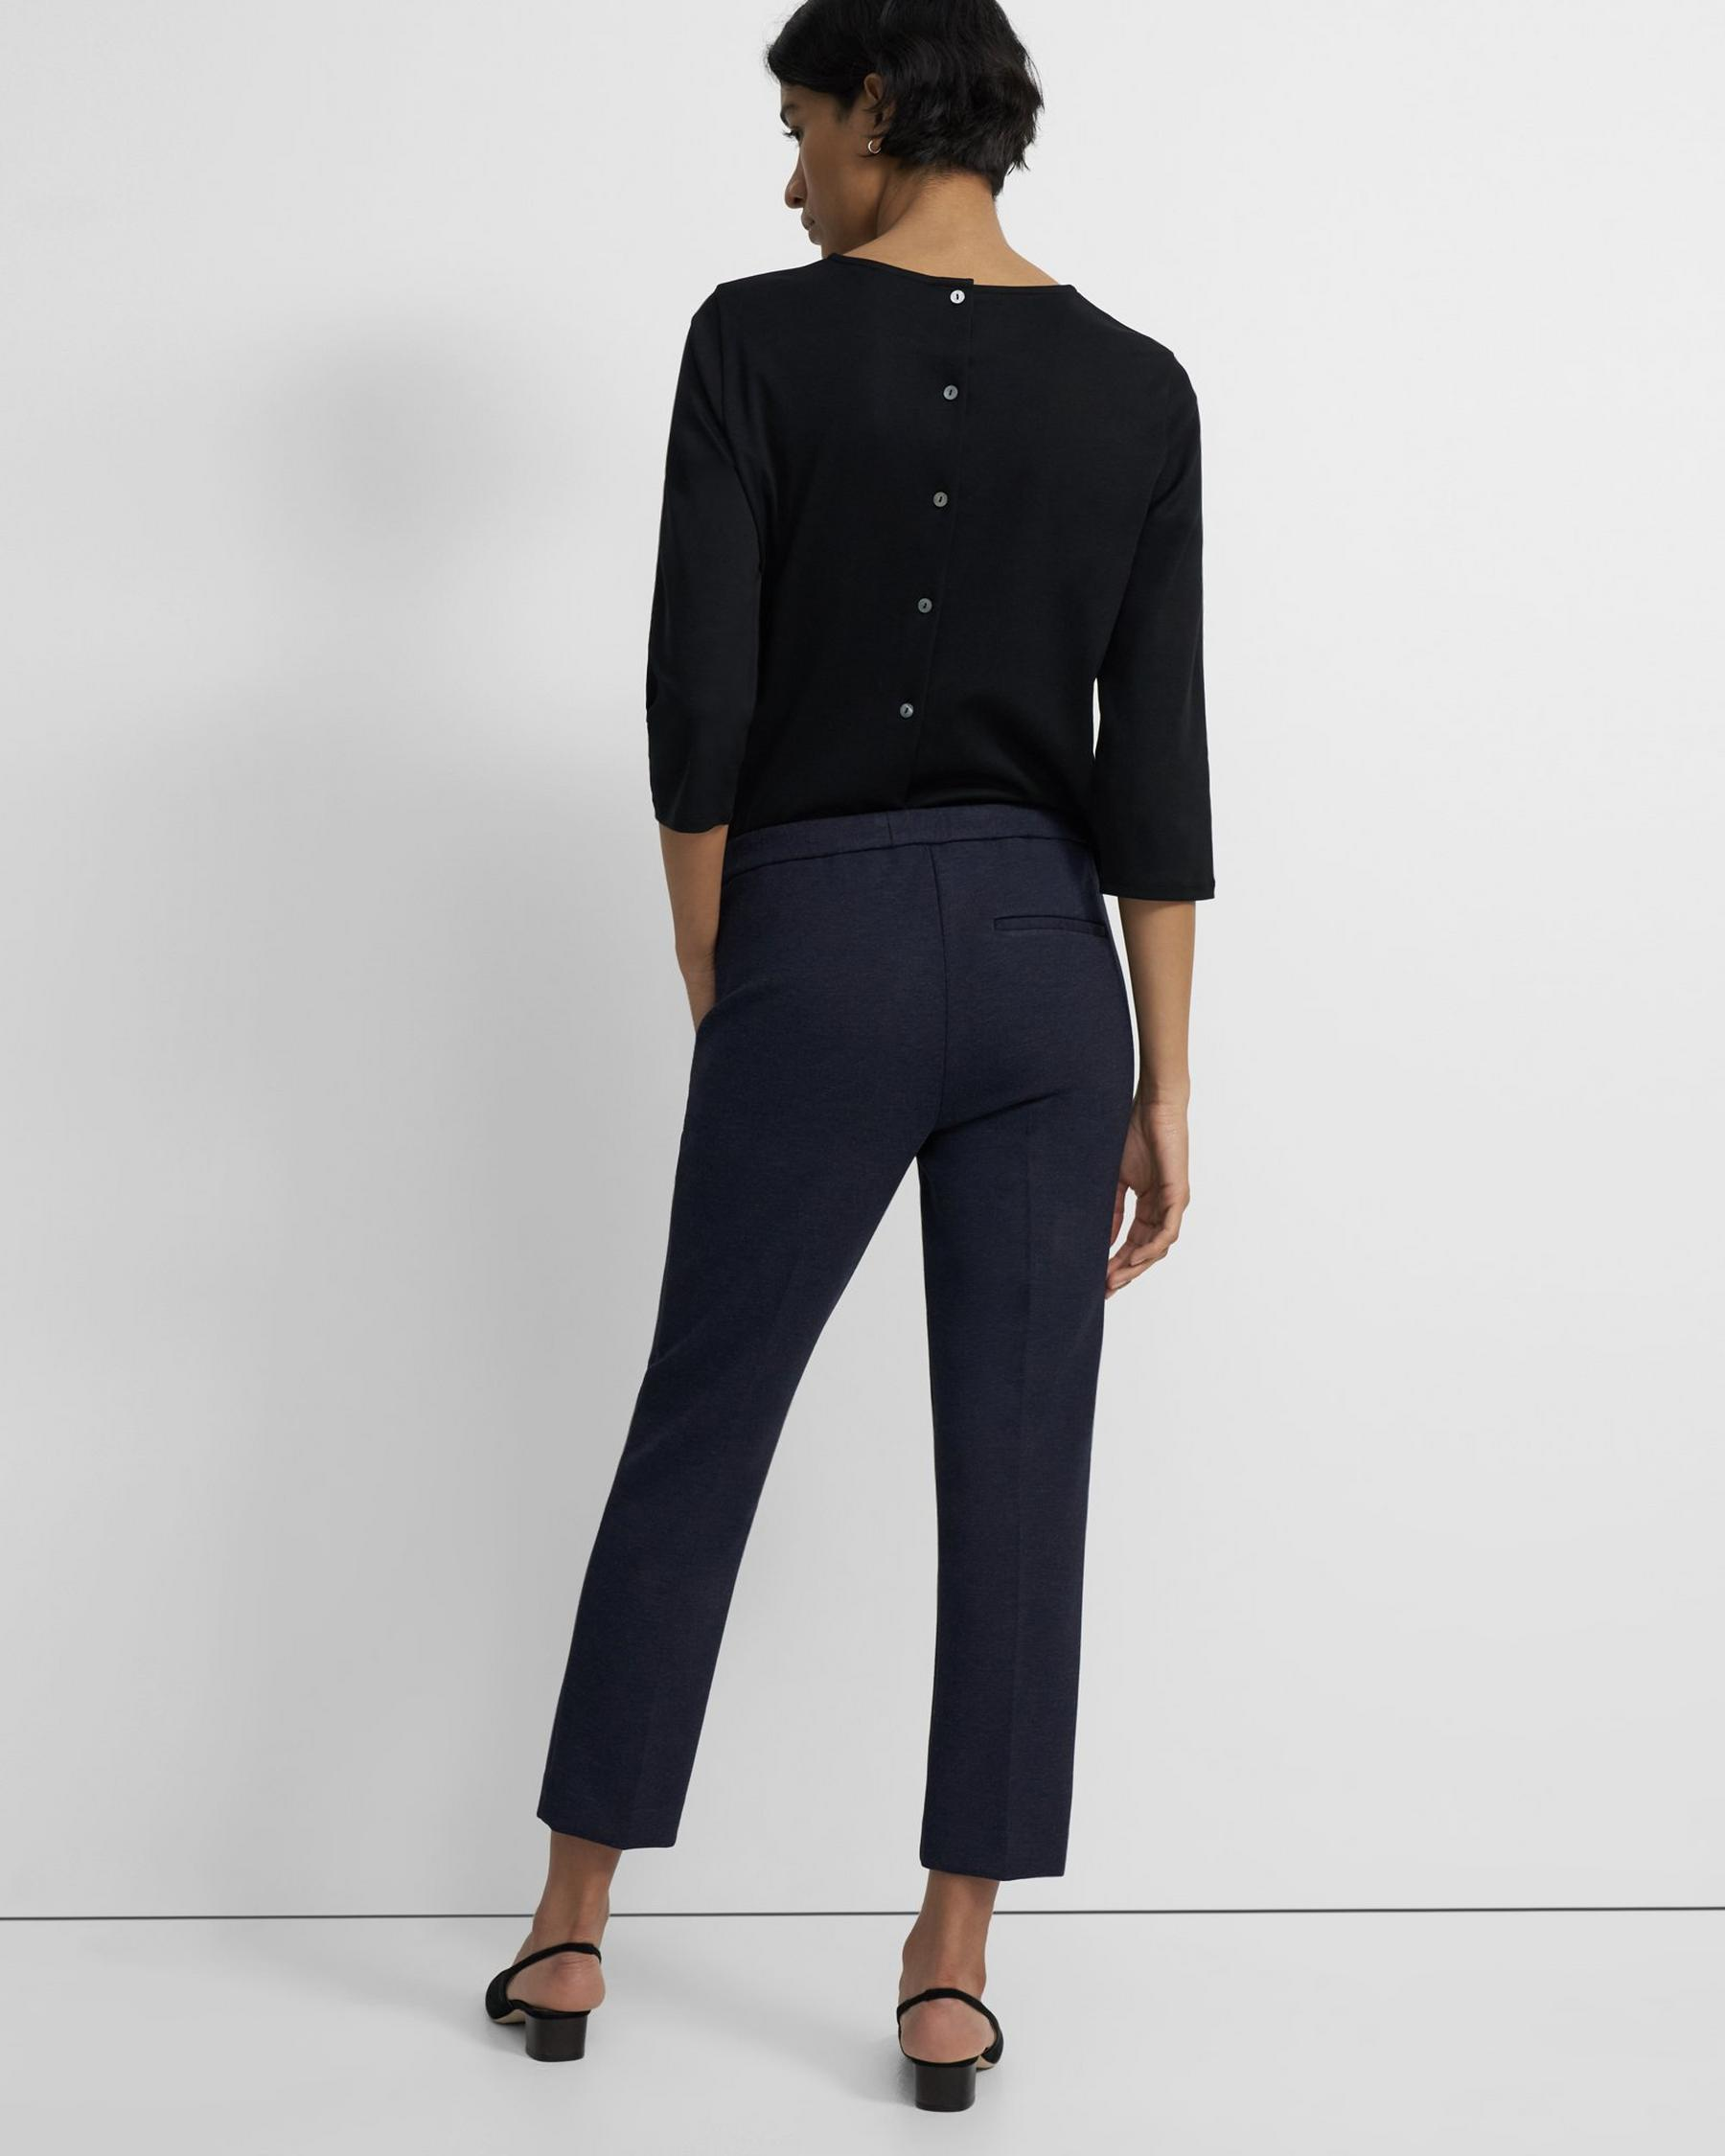 Treeca Pull-On Pant in Double-Knit Jersey 2